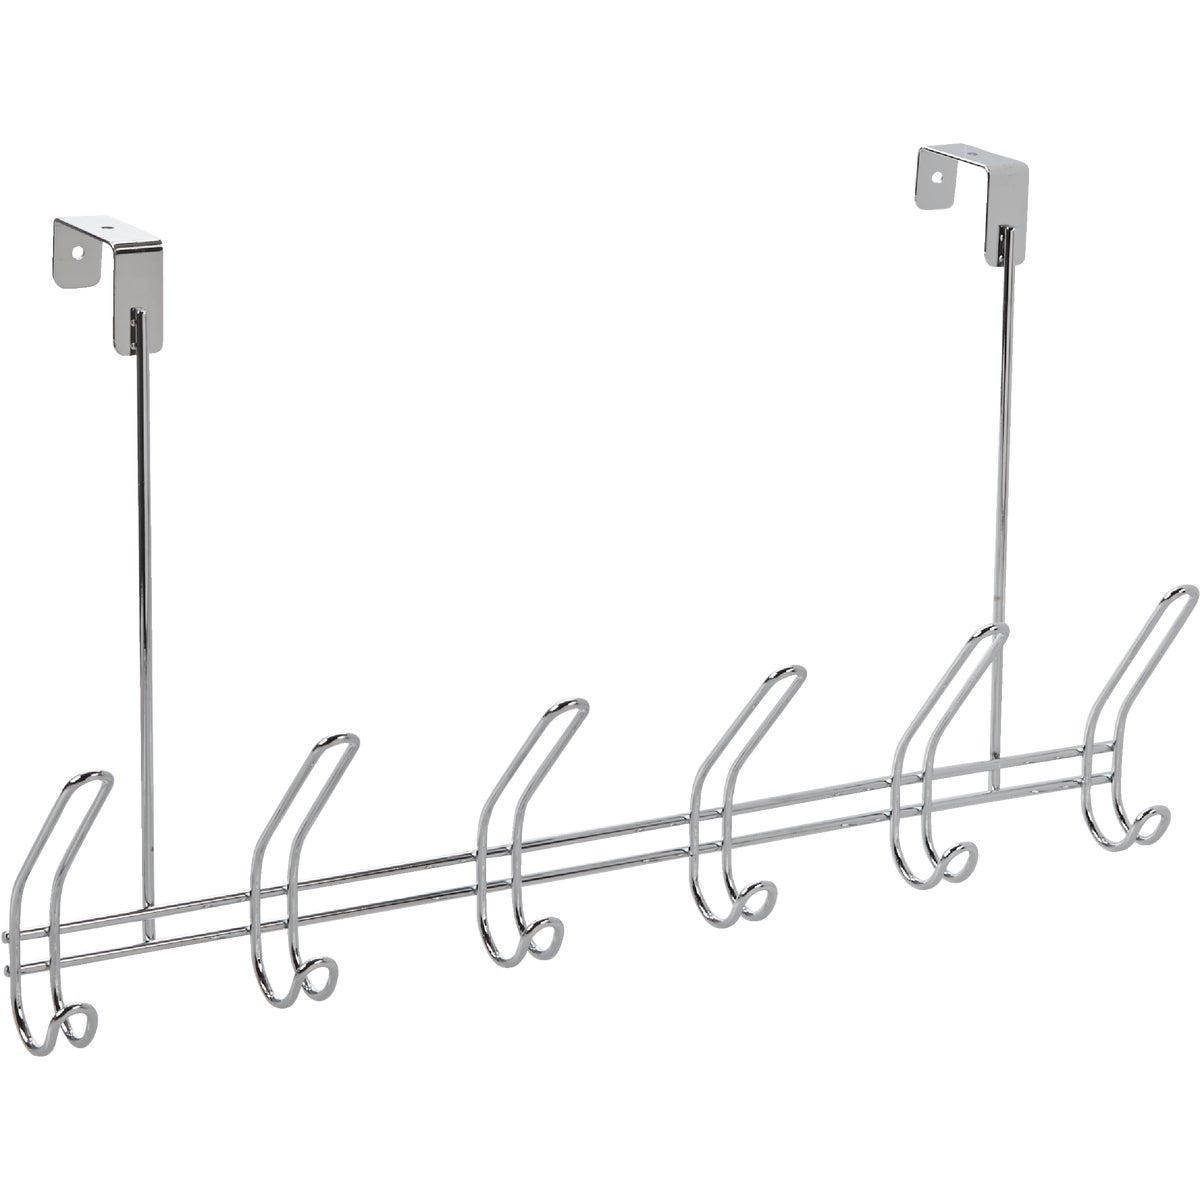 CHROME OVER DOOR RACK - 44002 by Interdesign Inc